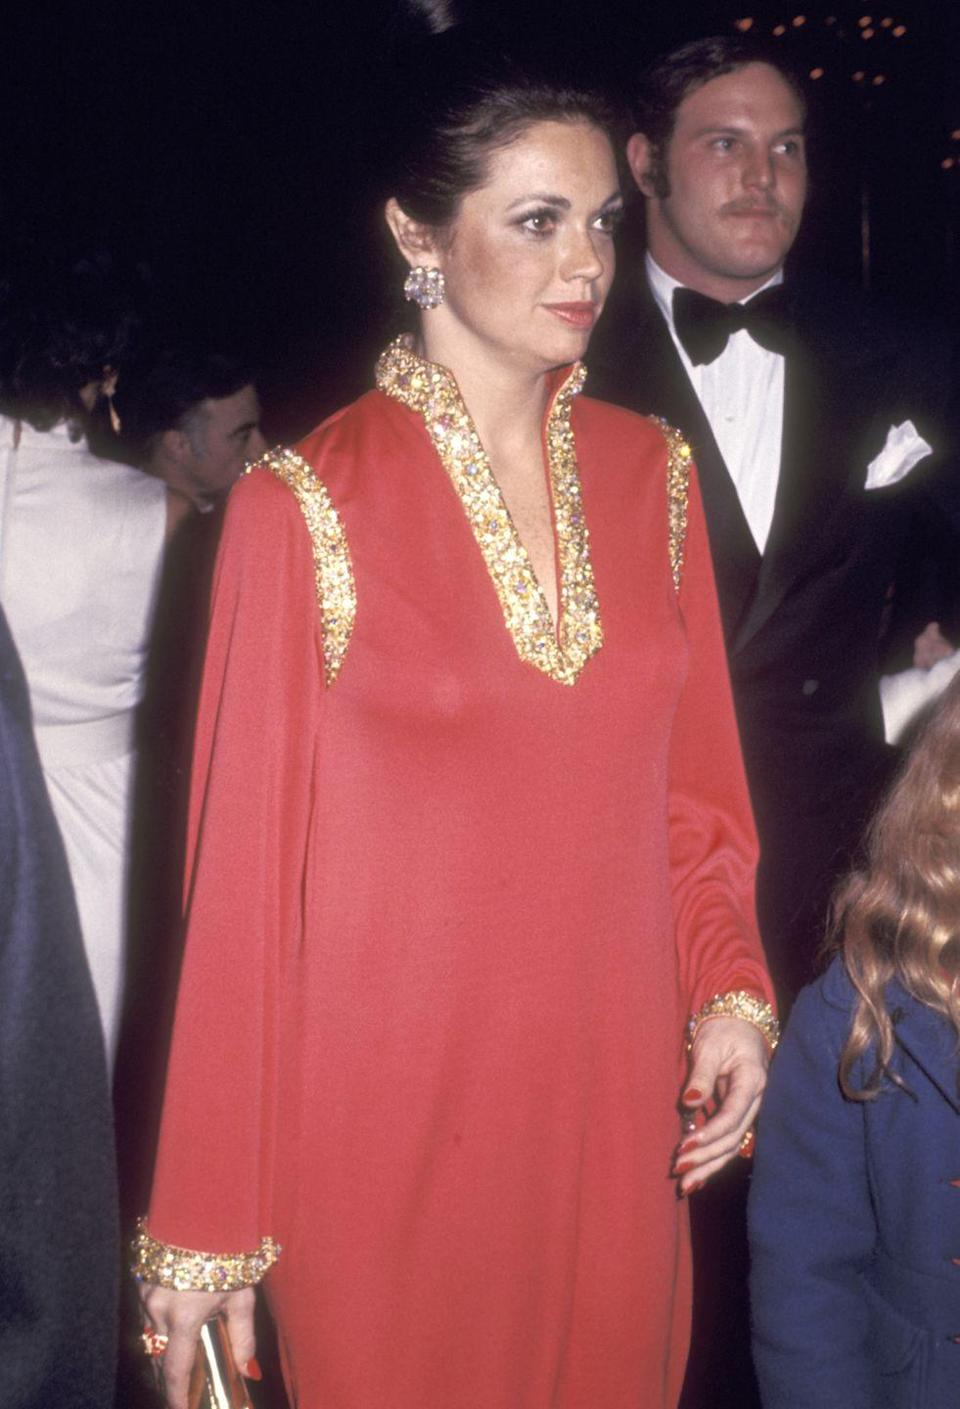 <p>This red gown with gold trimmings and a statement neck was one to remember from the 1972 Golden Globes. </p>